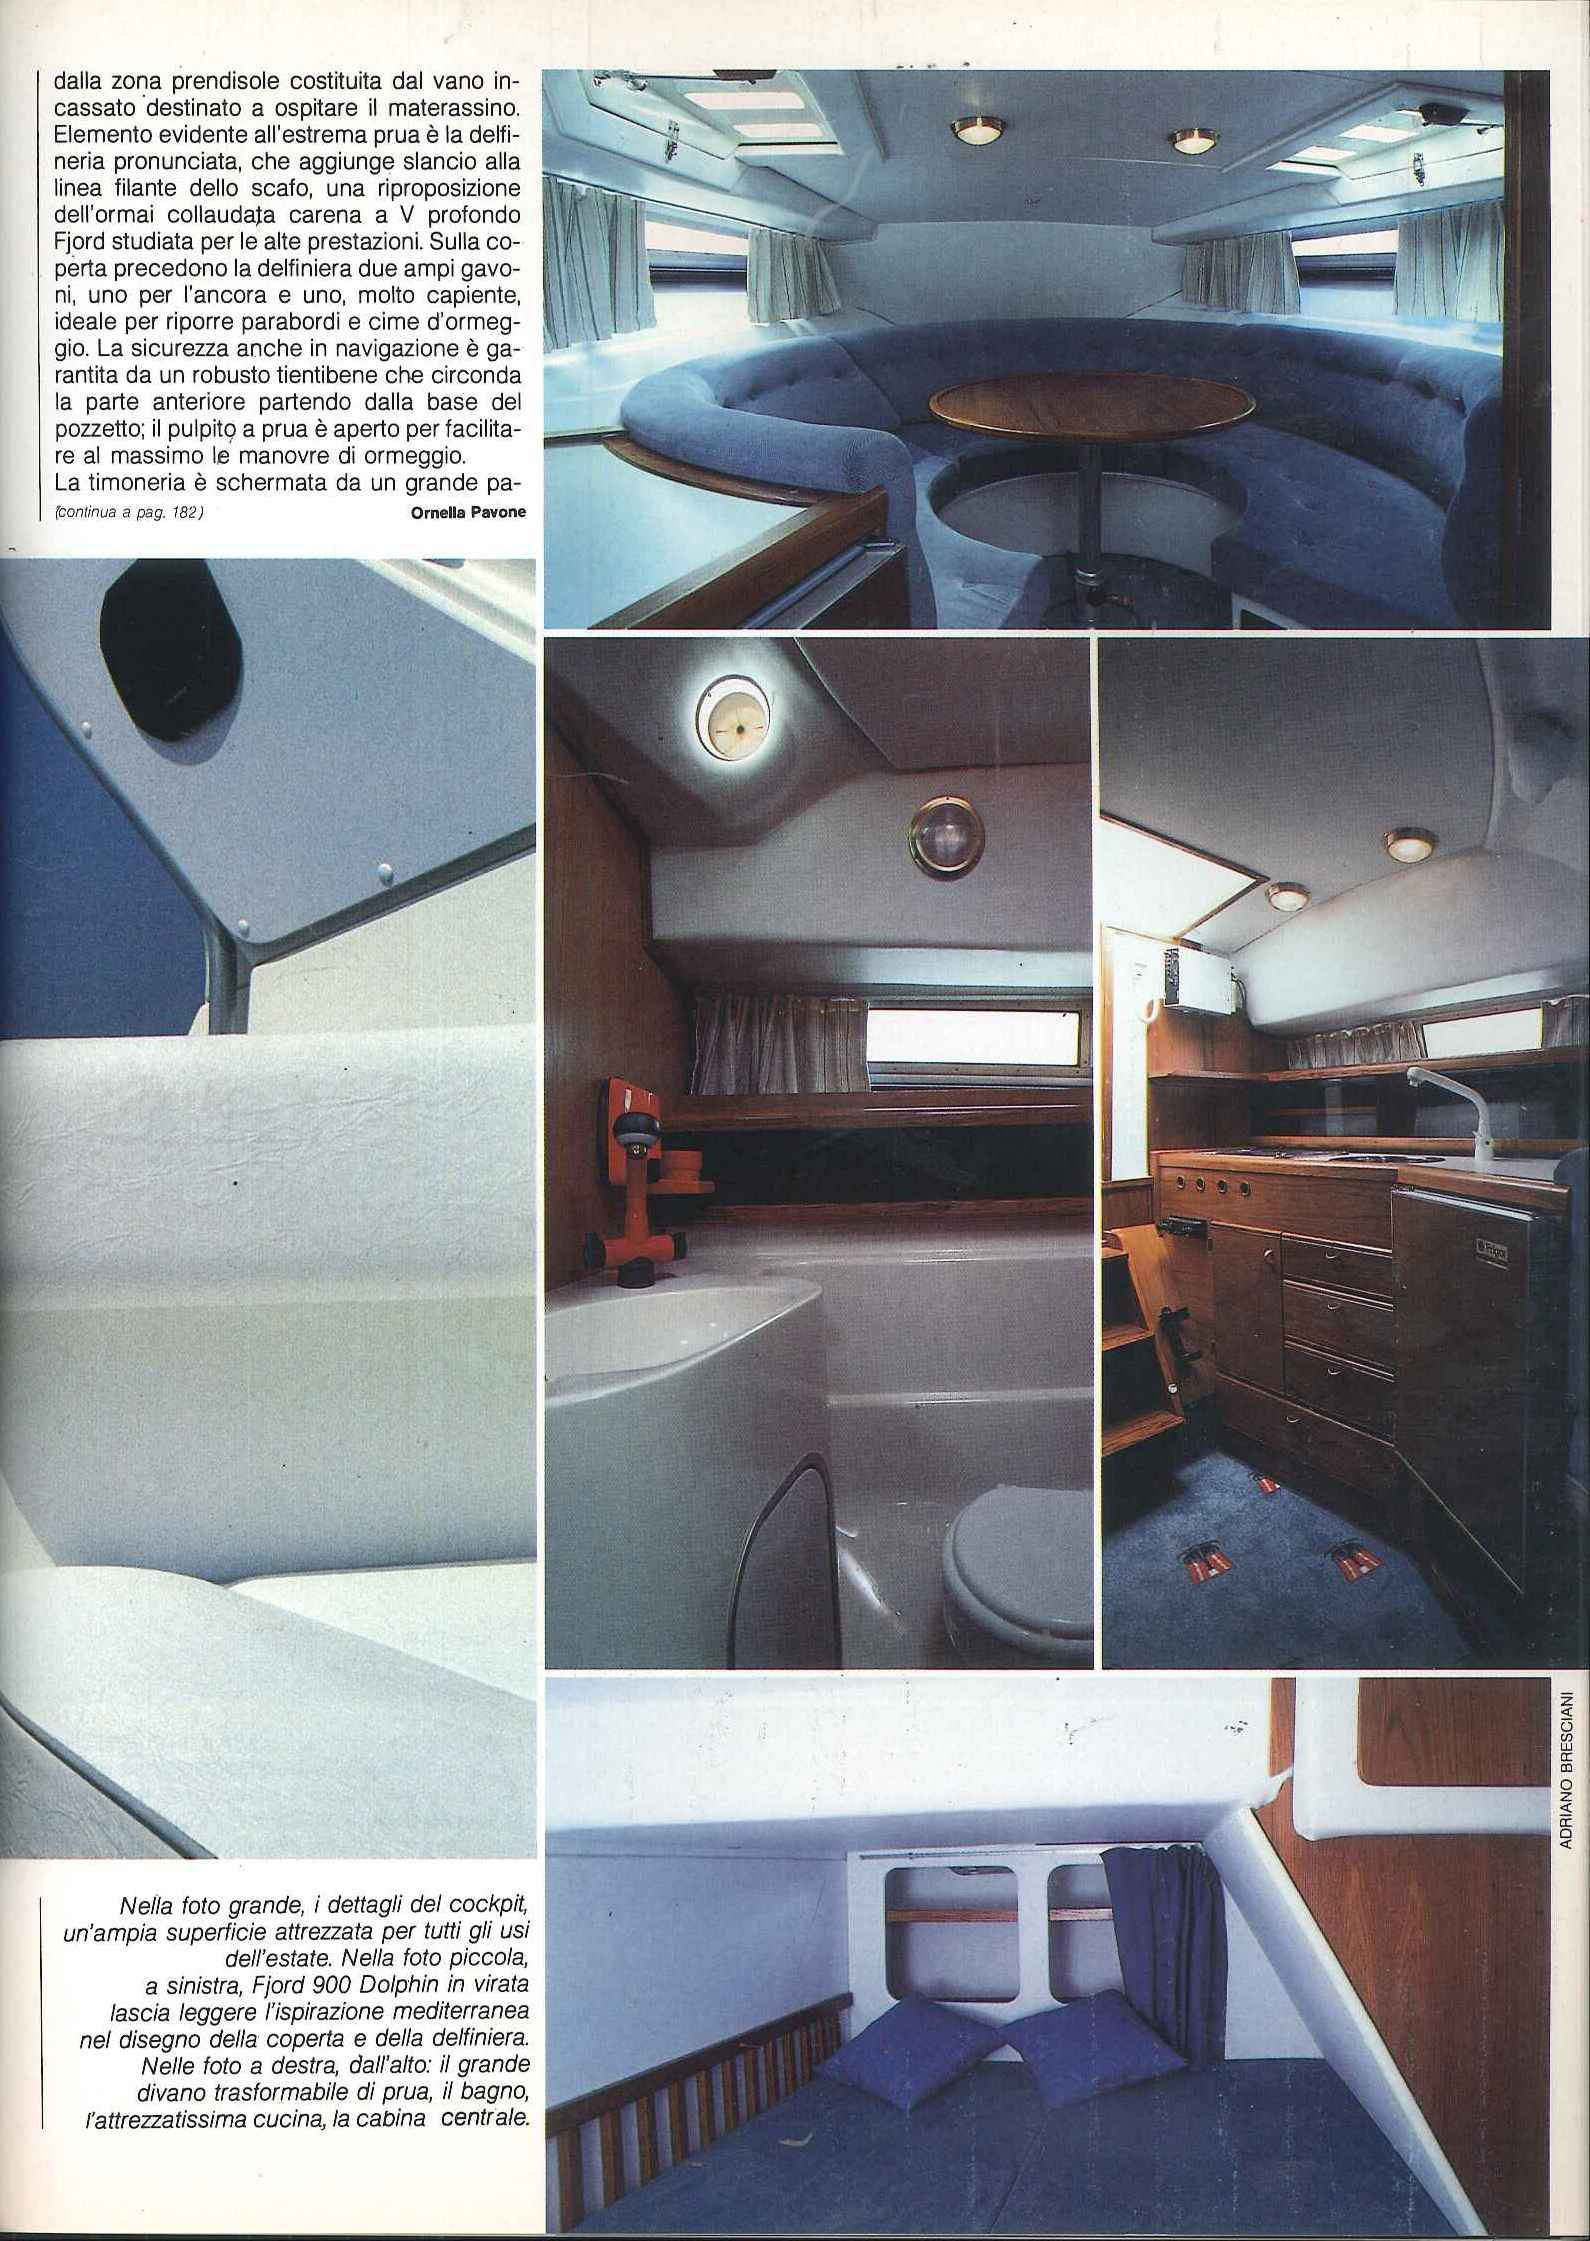 1987 07 PRESS FJORD 900 DOLPHIN UOMO MARE N°111(04).jpg